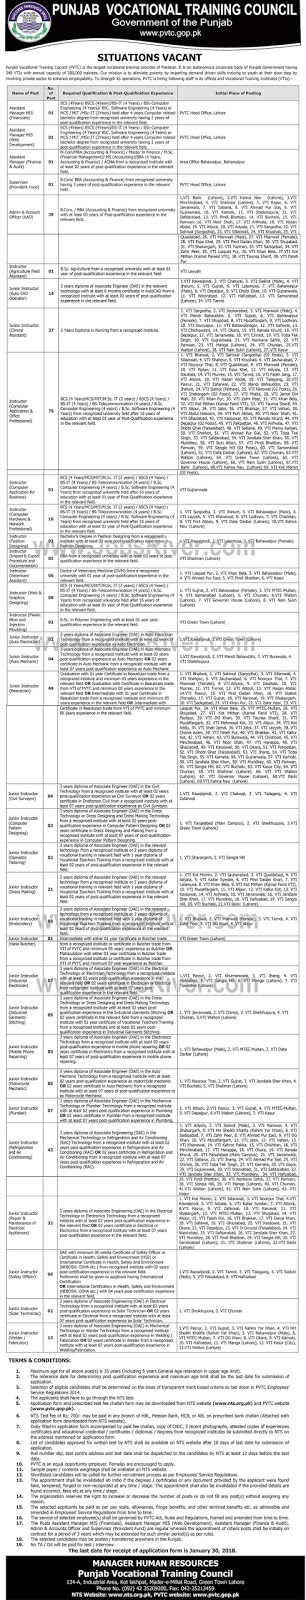 Jobs In Punjab Vocational Training Council - Lahore Jobs 2018